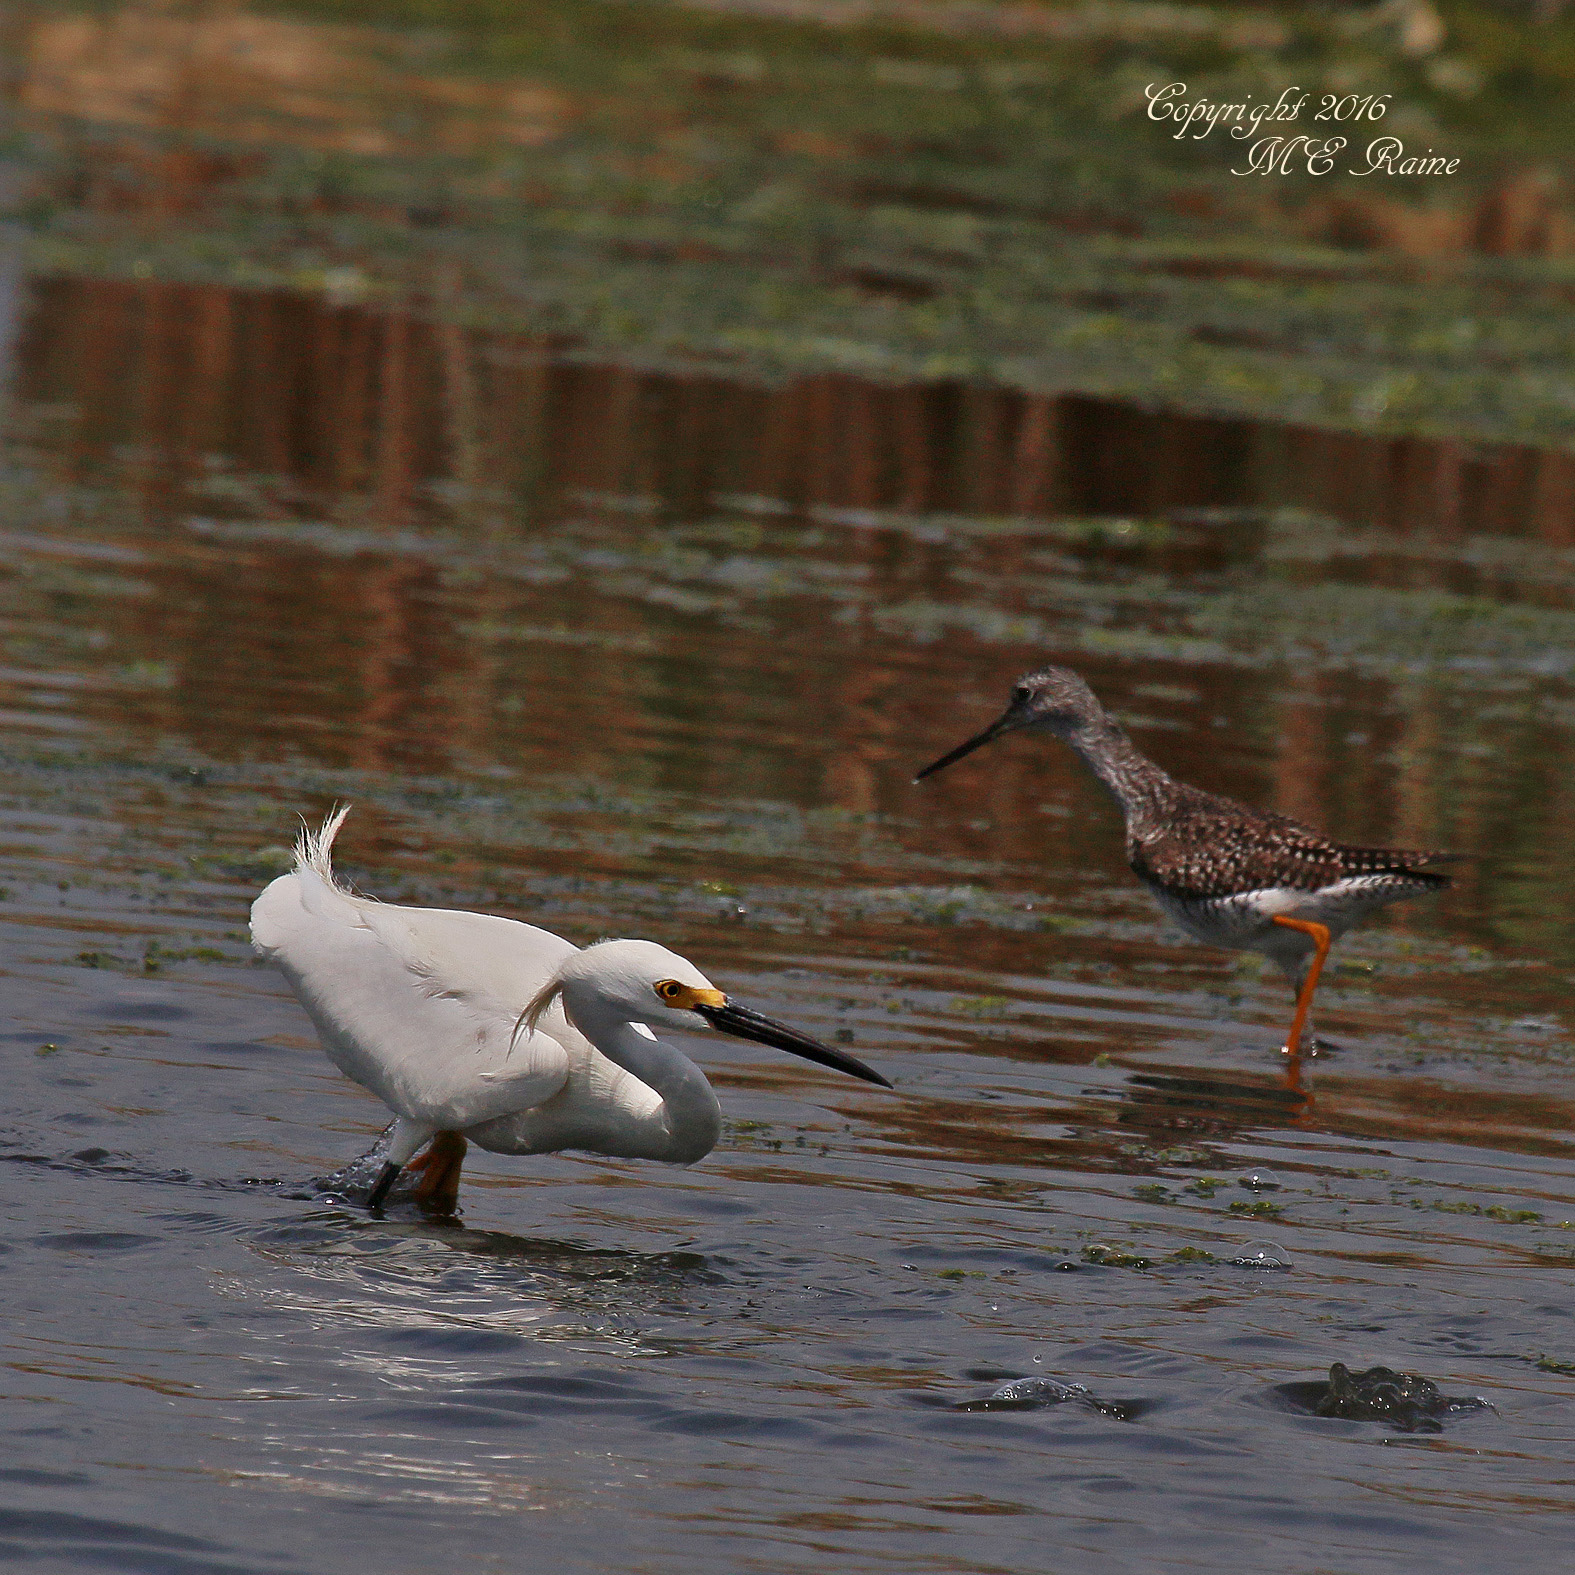 Egret and Yellowleg dekorte 5.14.16